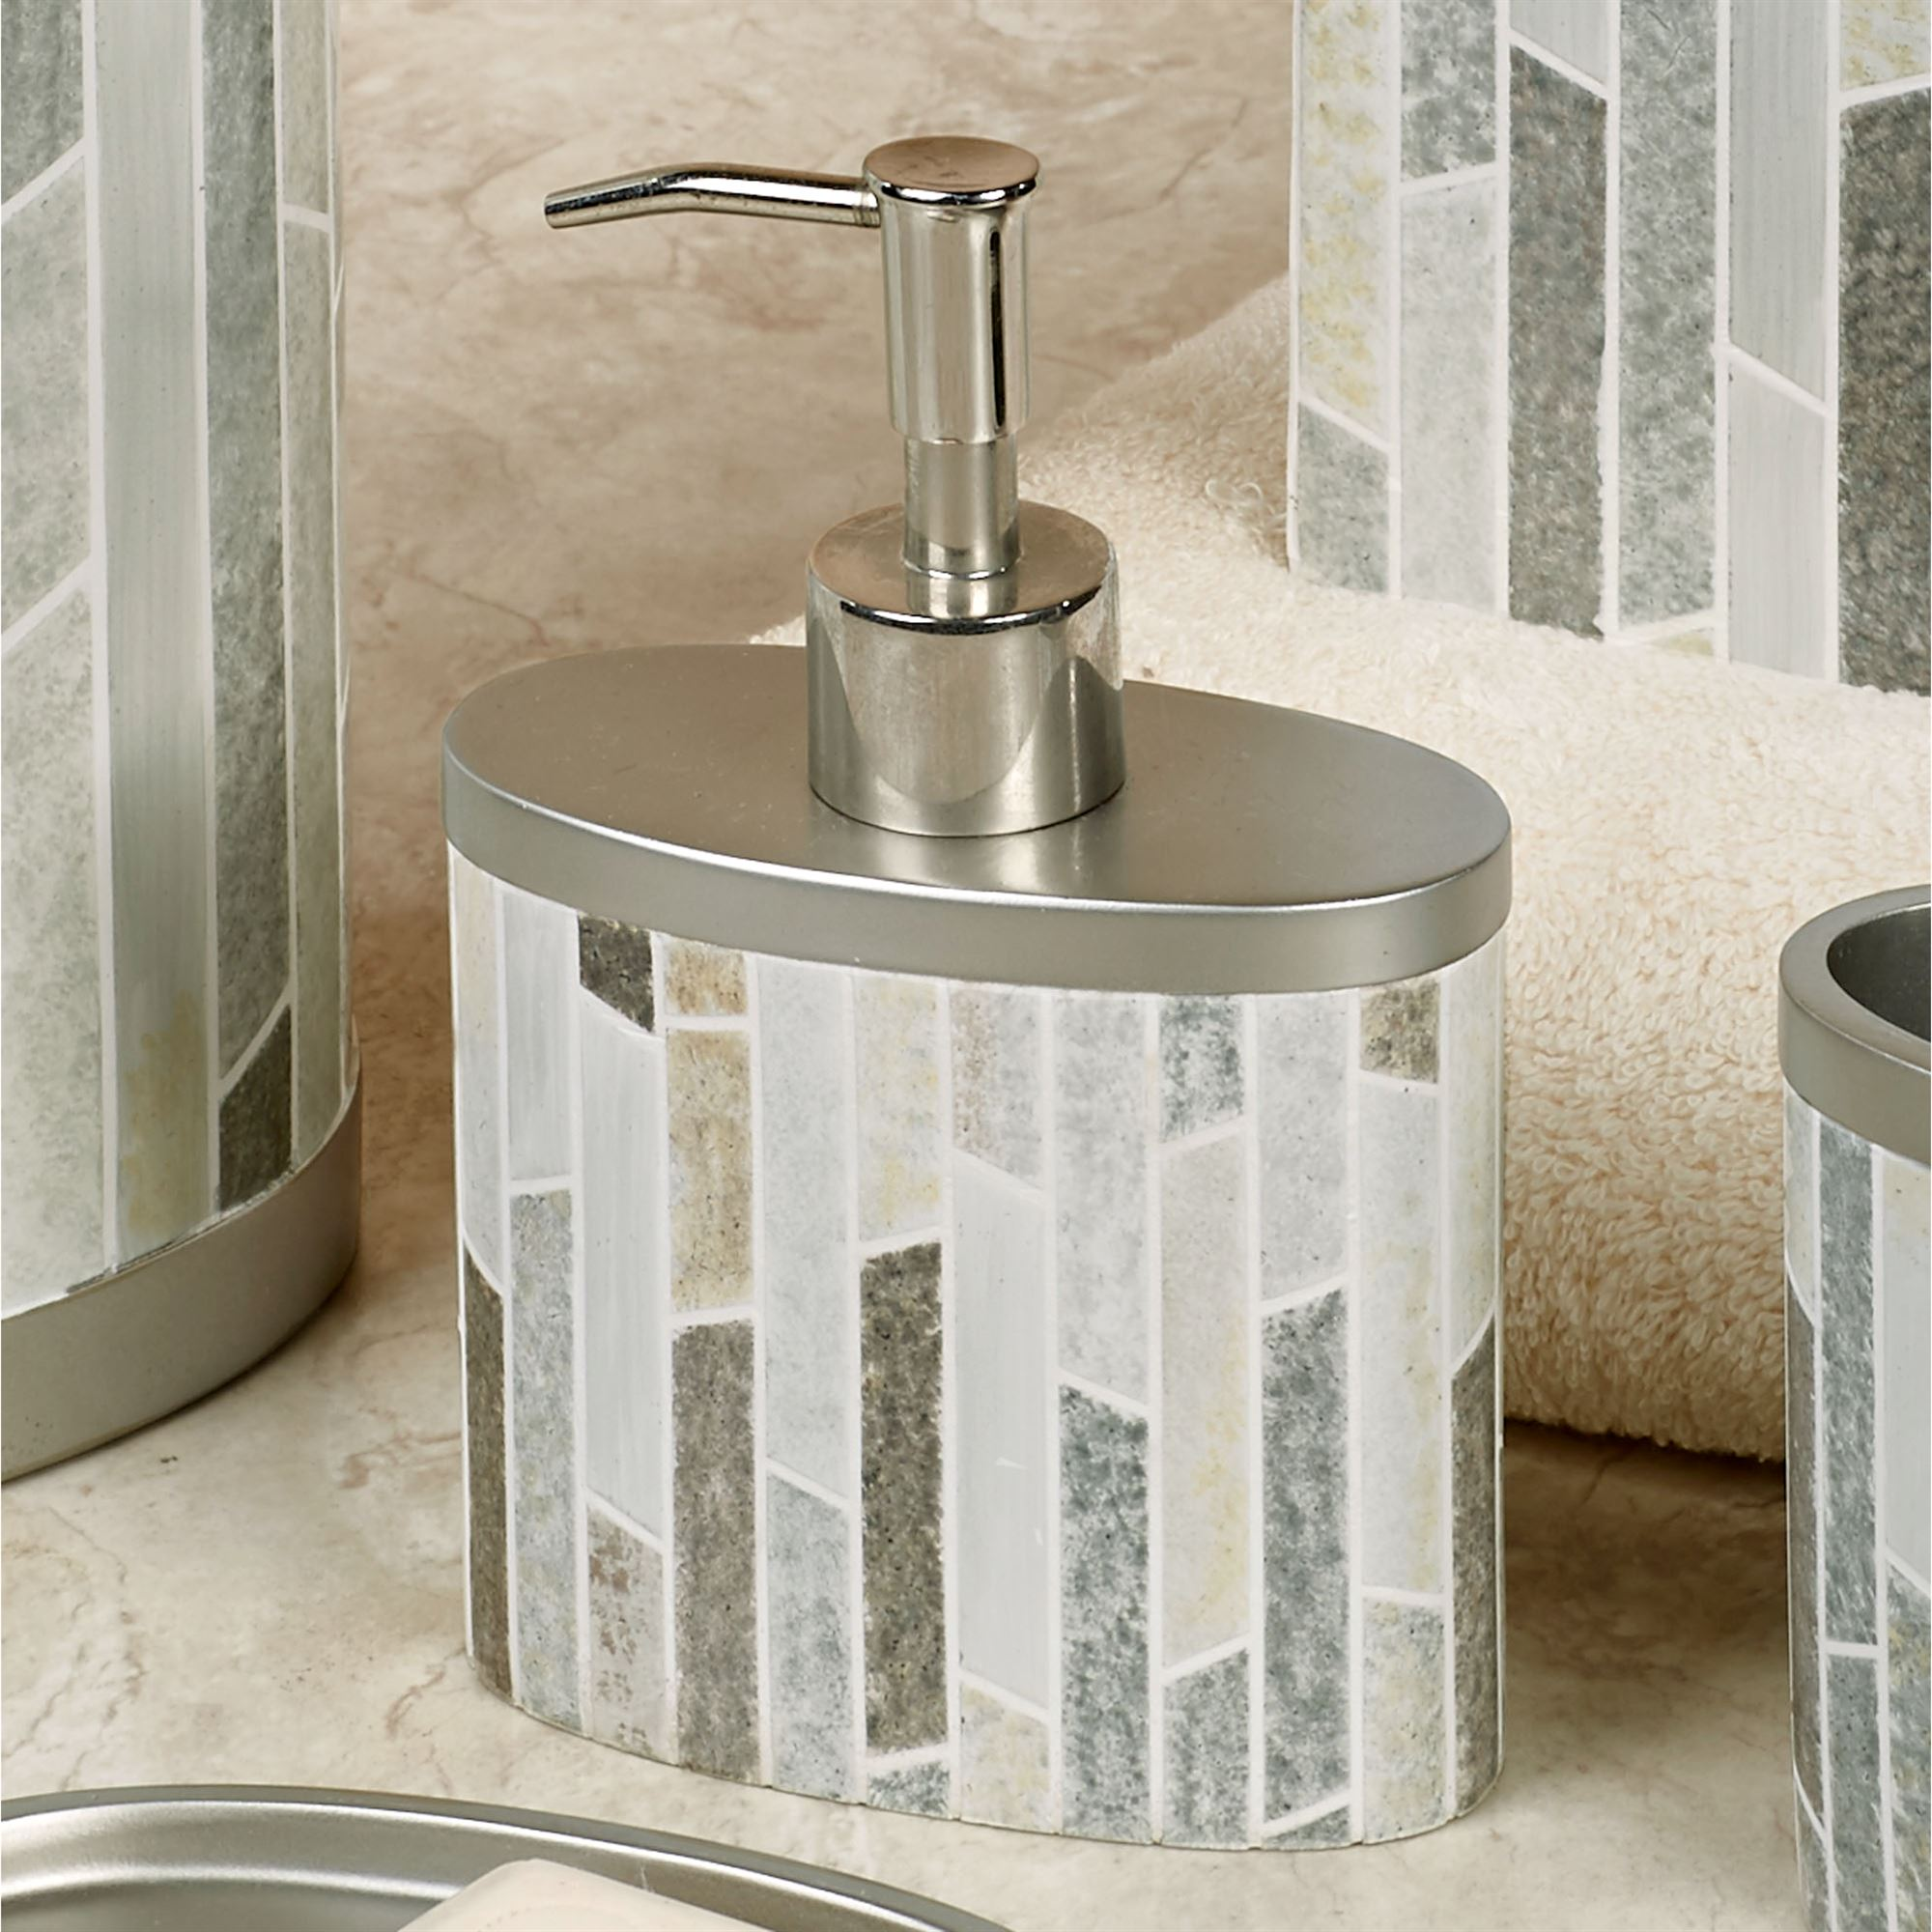 Etonnant Titania Lotion Soap Dispenser Platinum